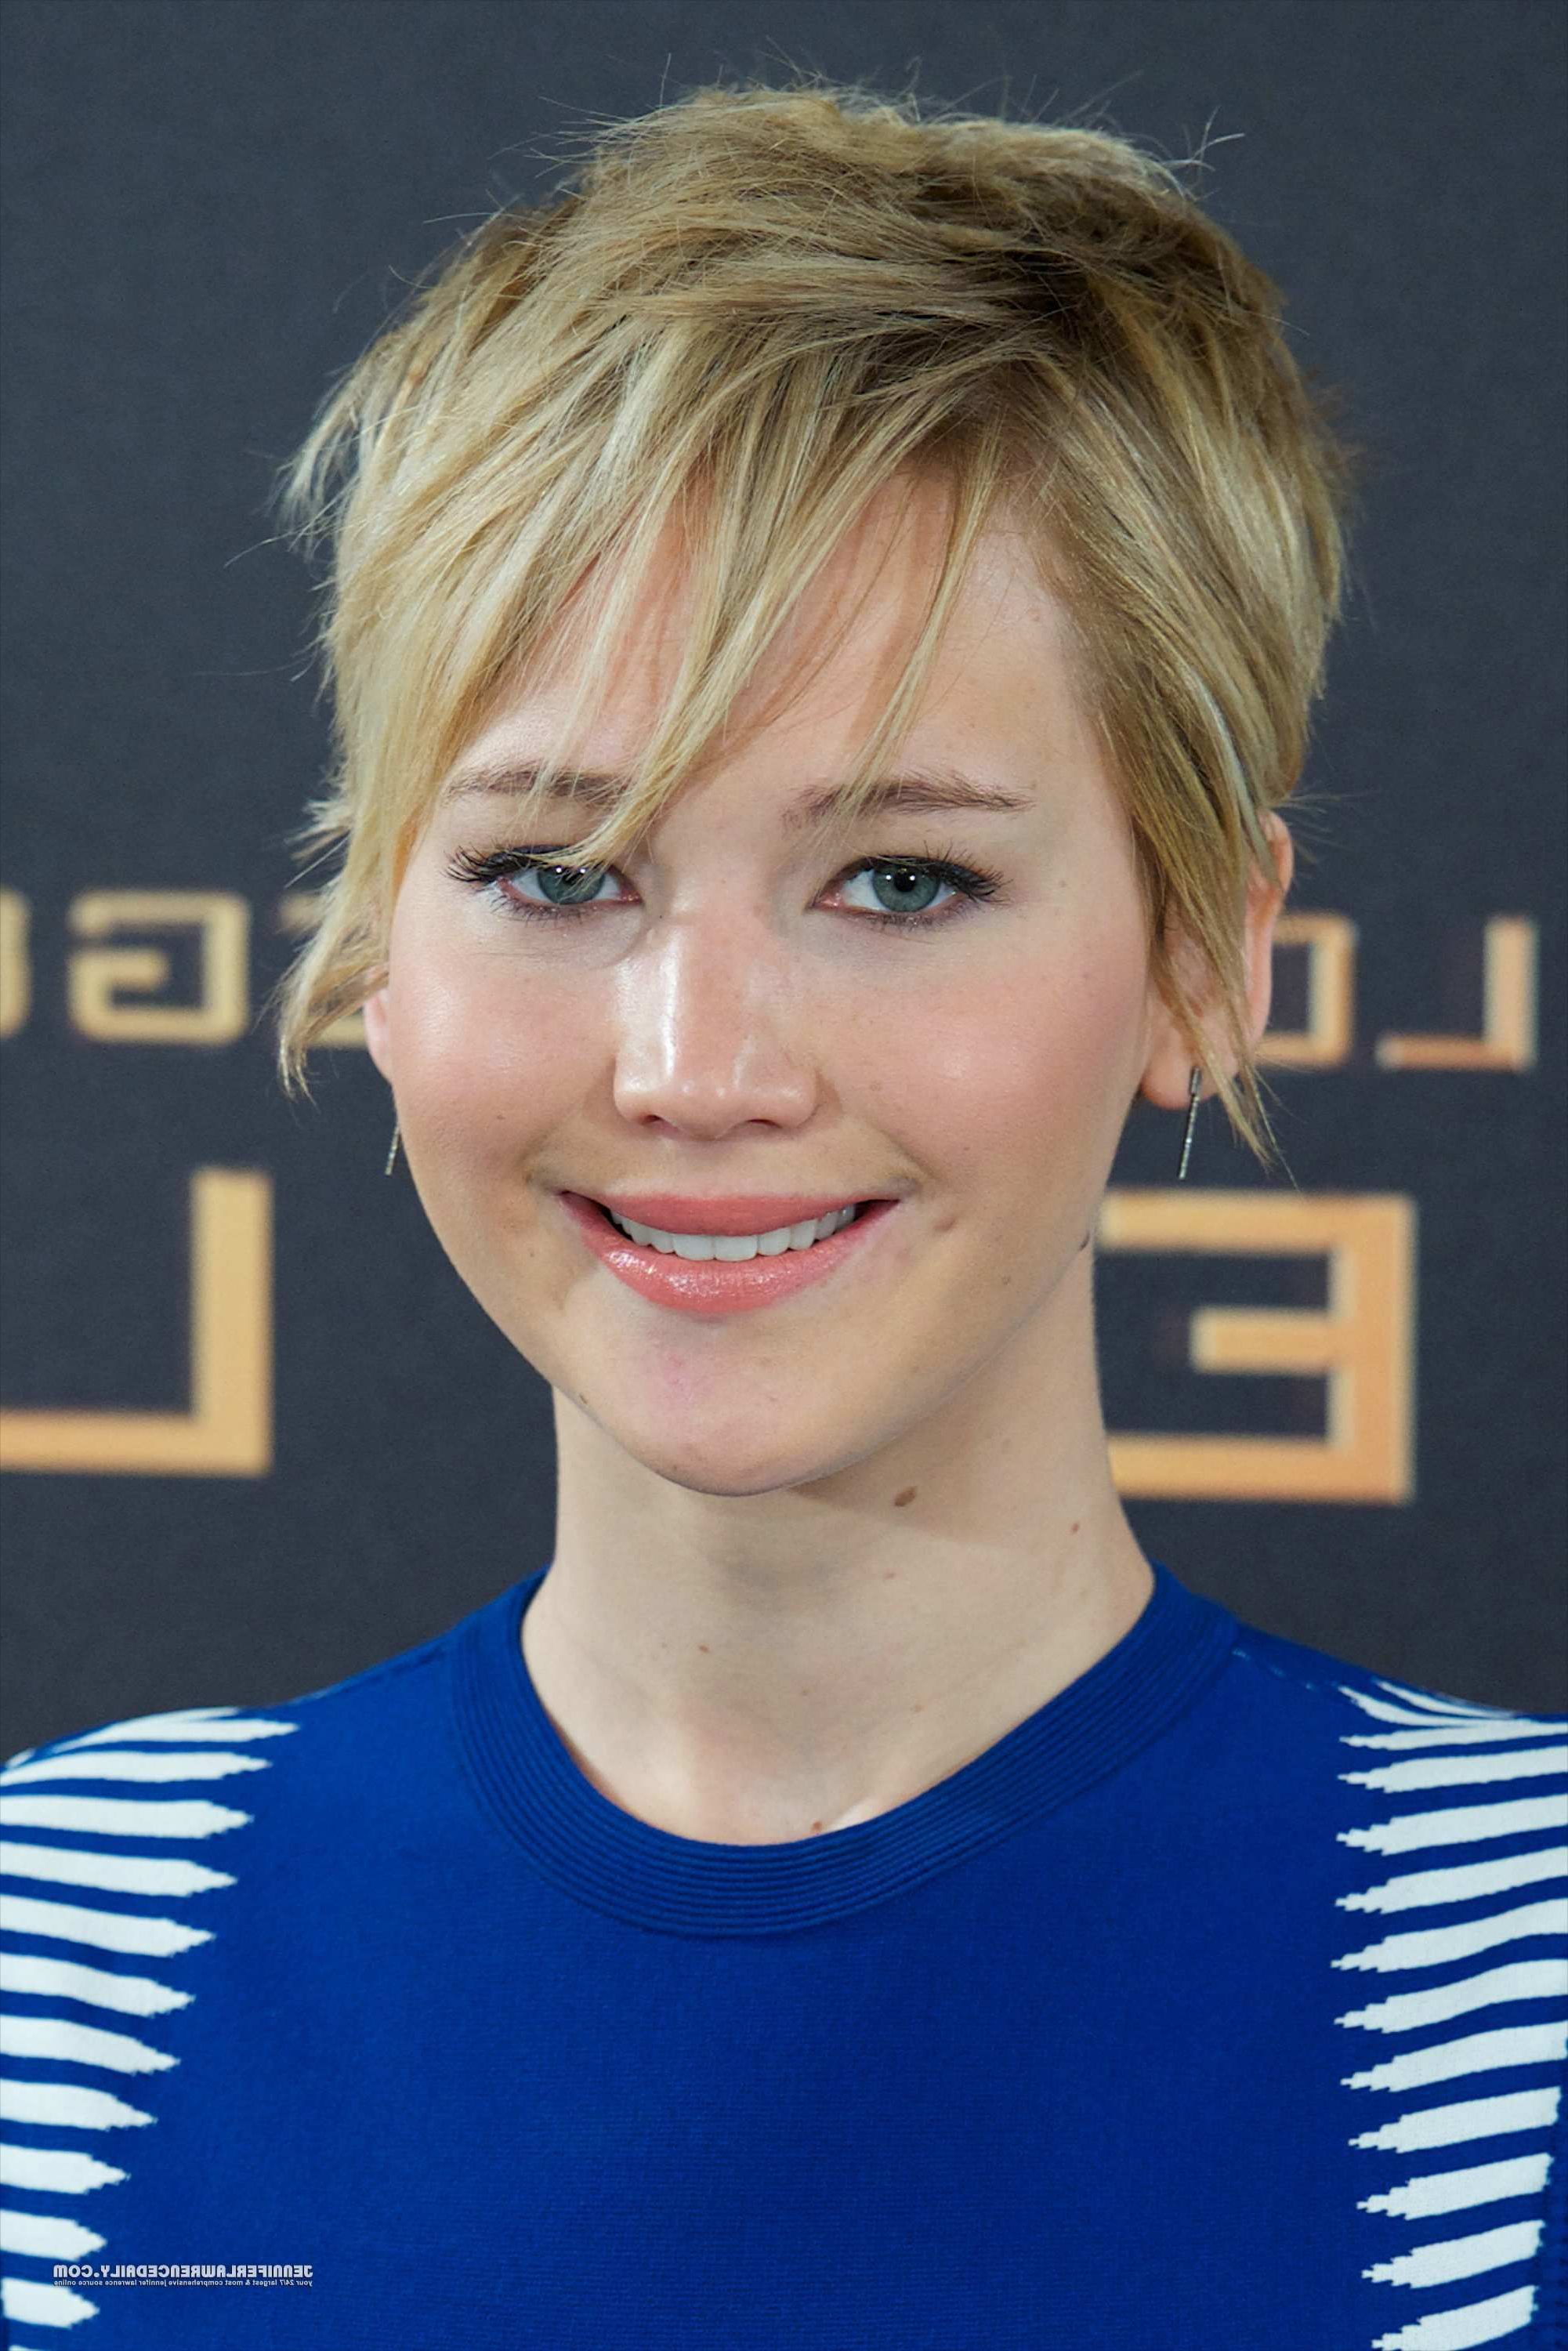 Pinjessica Anguiano On Jennifer Lawrence   Pinterest   Jennifer Intended For Fire Red Short Hairstyles (View 17 of 25)